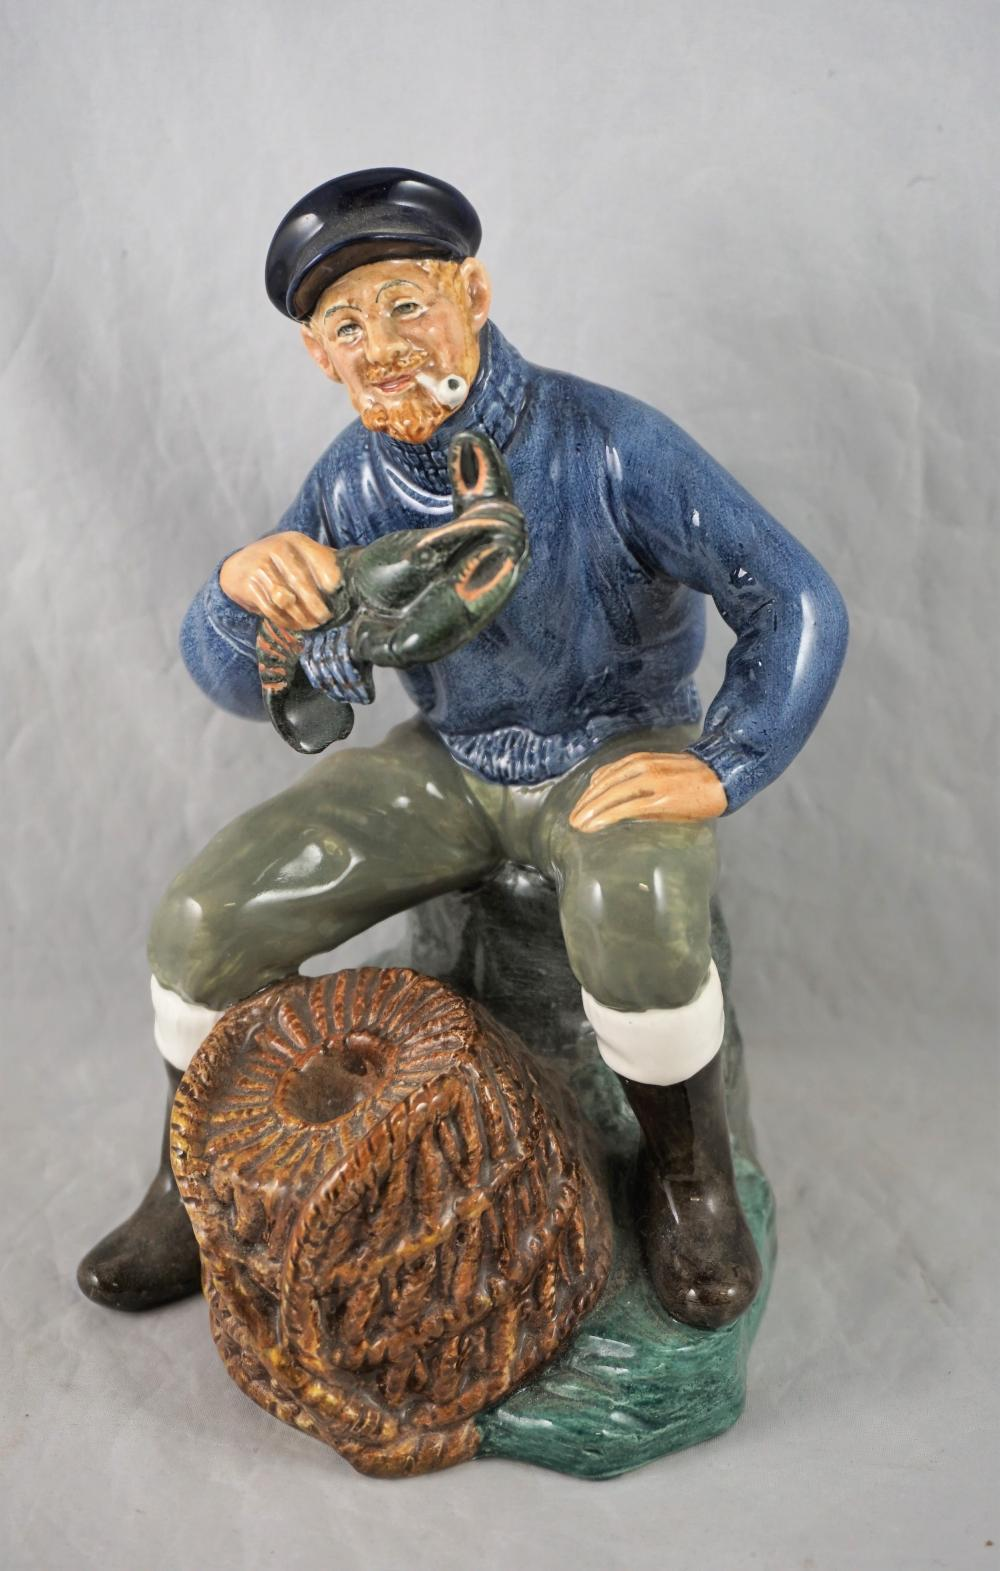 Royal Doulton The Lobster Man figurine